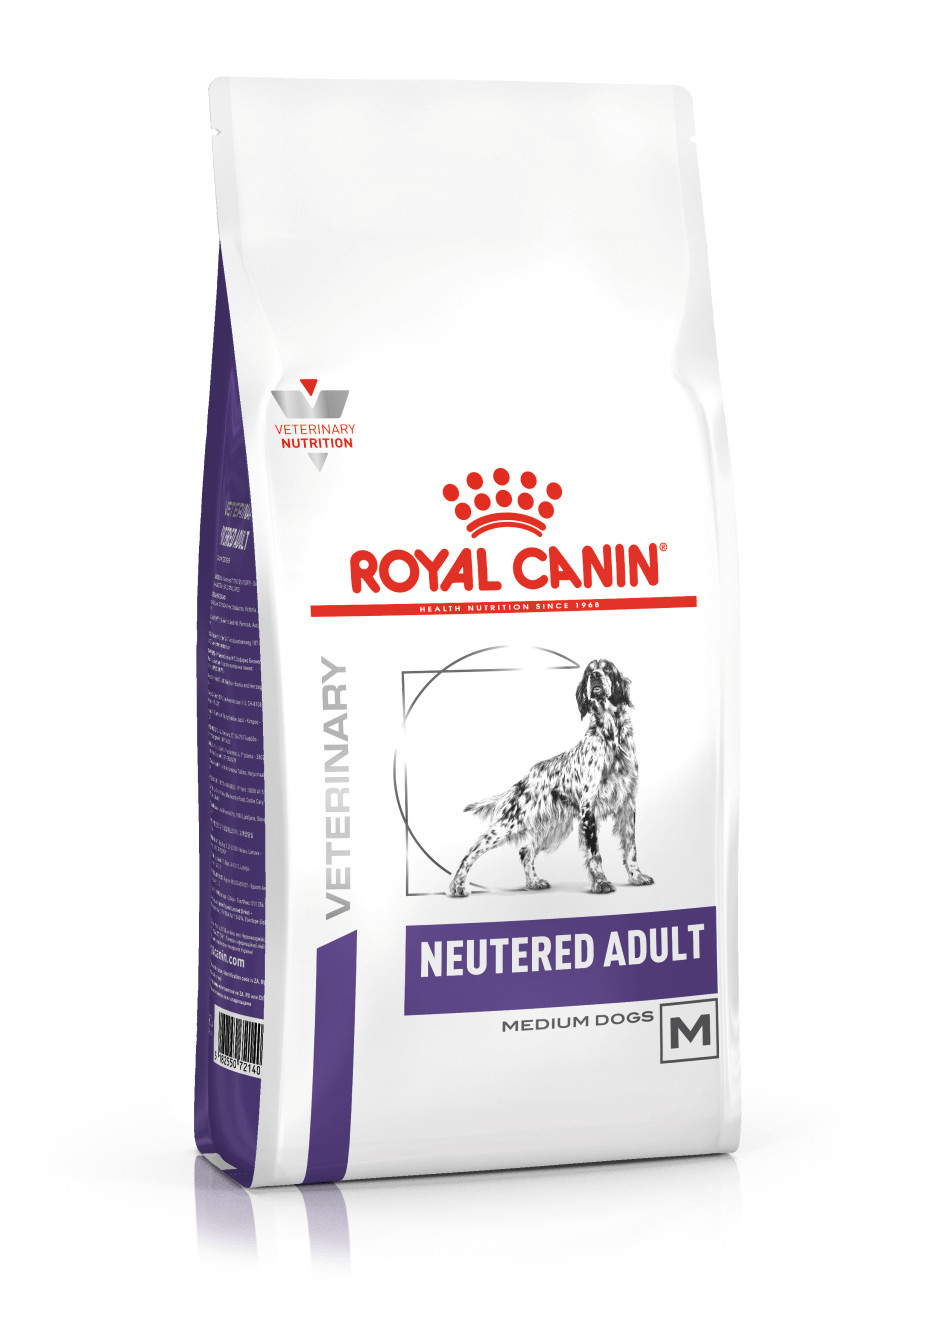 Royal Canin Veterinary Neutered Adult Medium Dogs pour chien